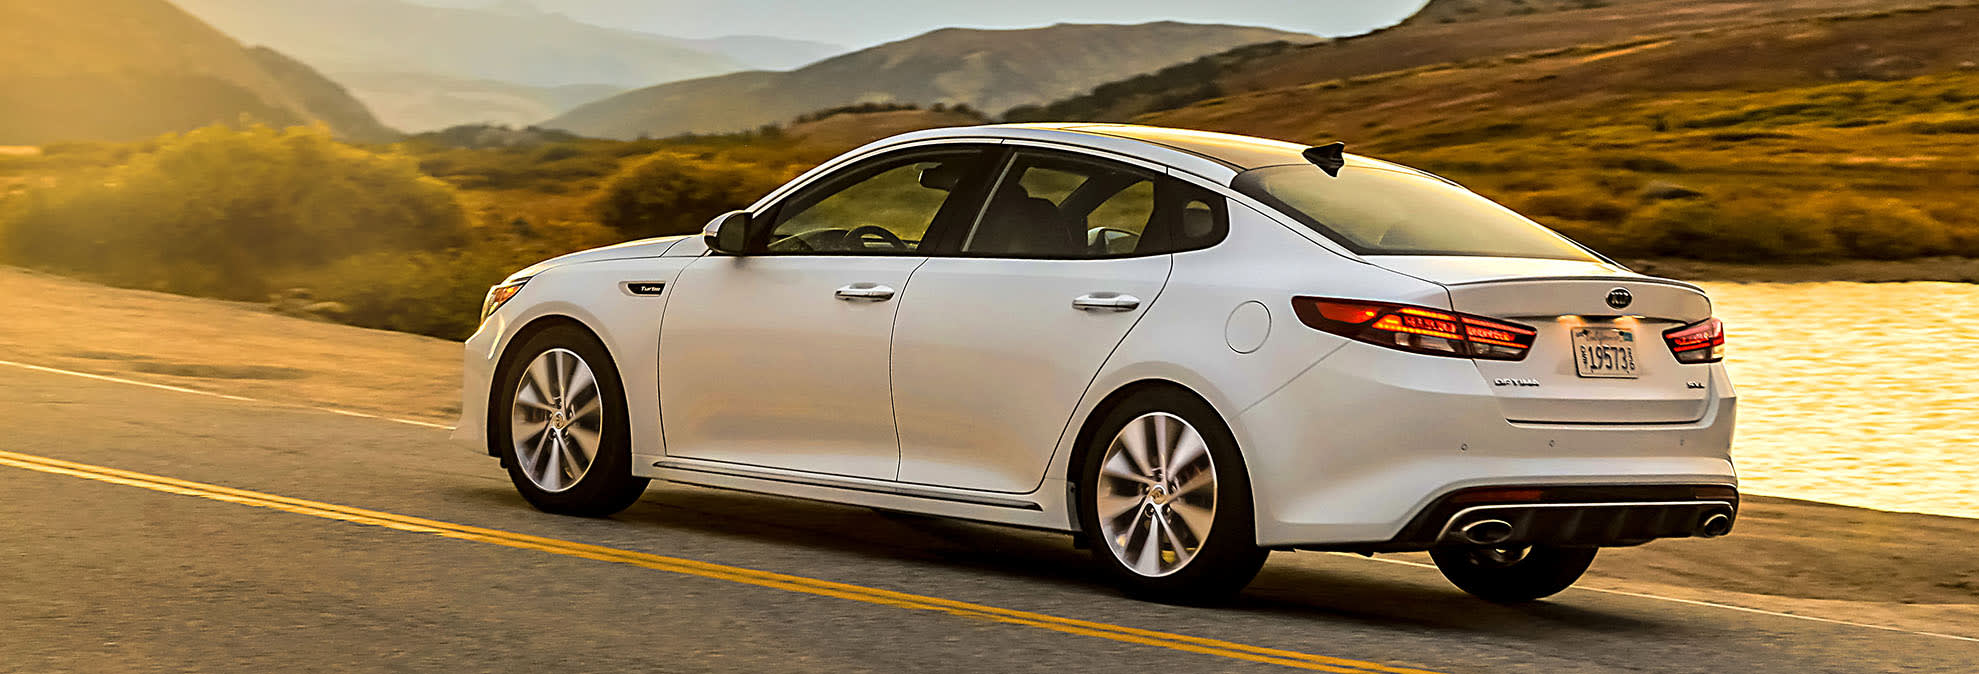 Best End-of-the-Year Car Deals - Consumer Reports